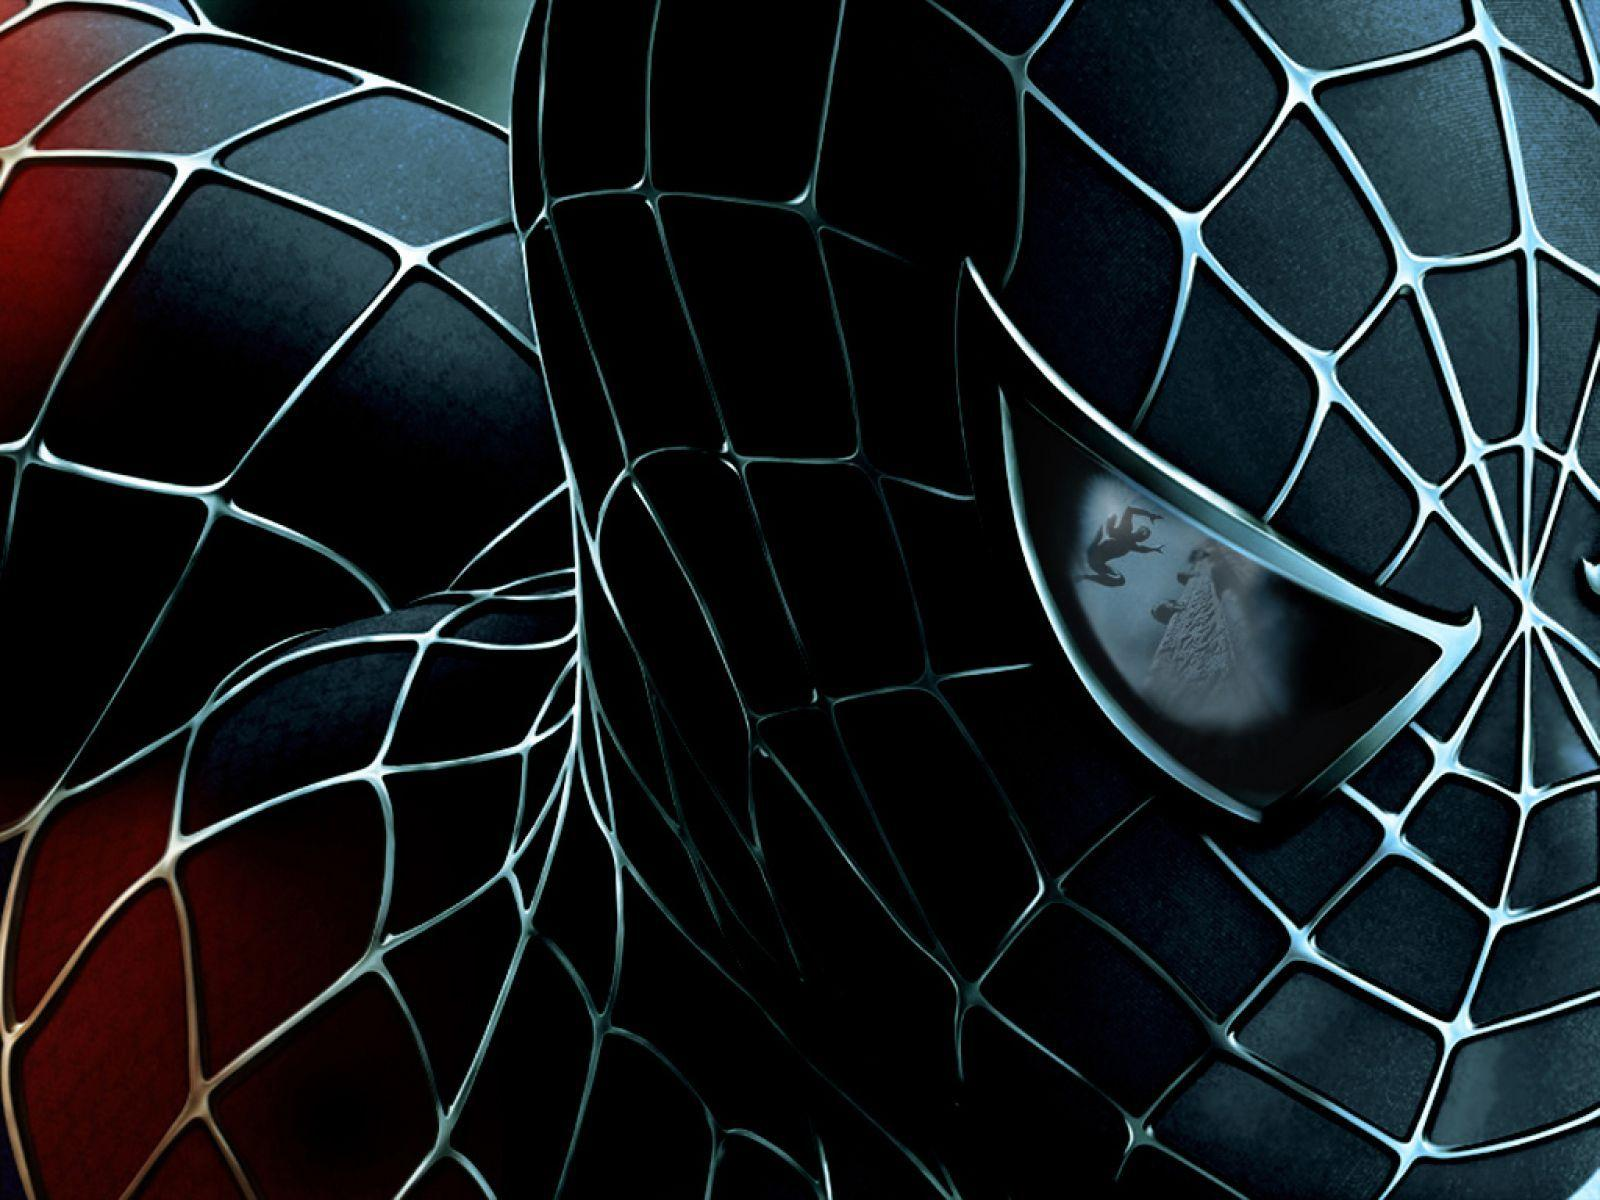 spiderman 3 black spiderman wallpaper 16884 hd wallpapers in